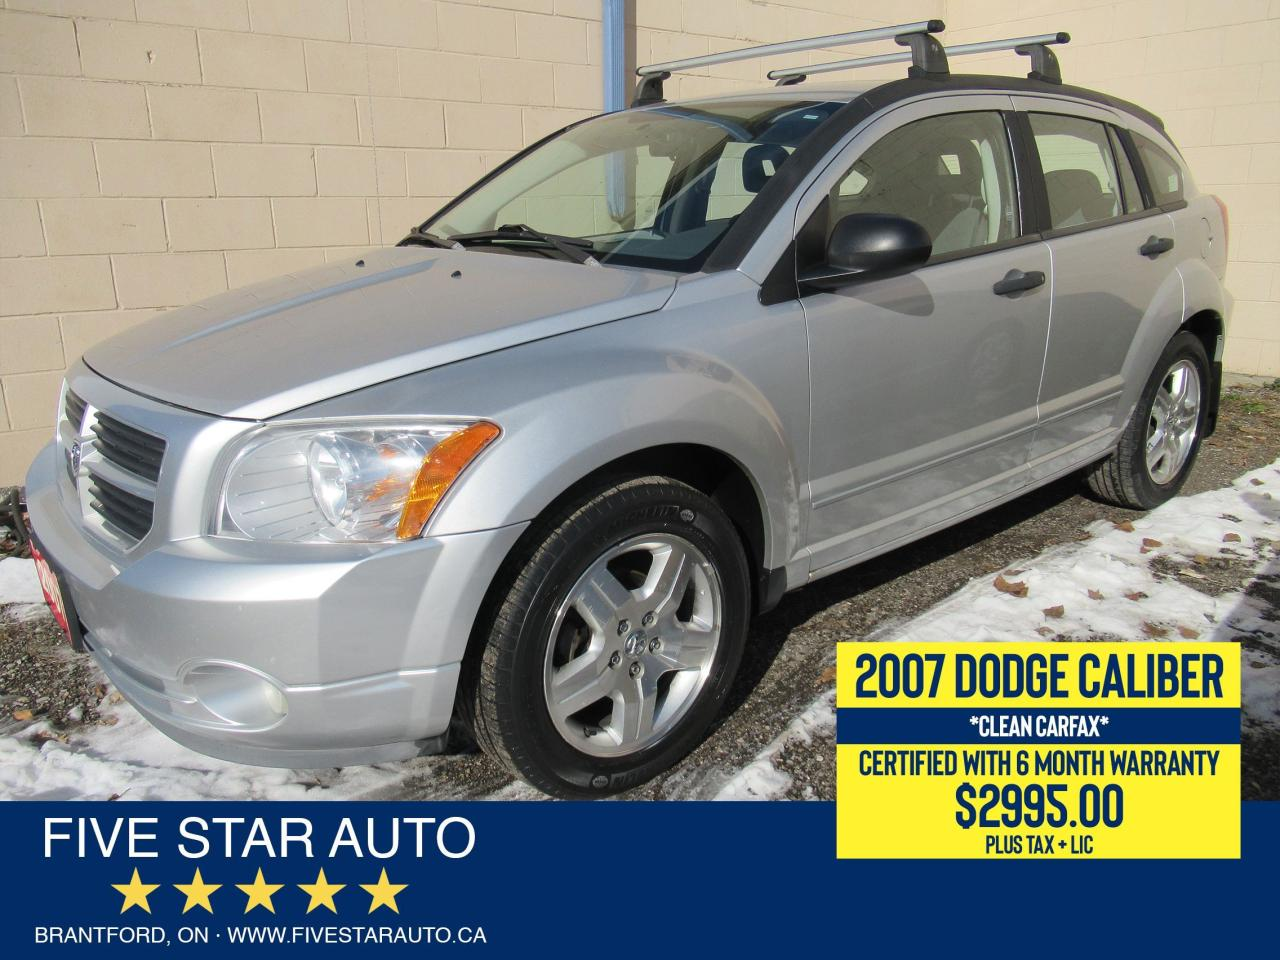 2007 Dodge Caliber SXT *Clean Carfax* Certified w/ 6 Month Warranty